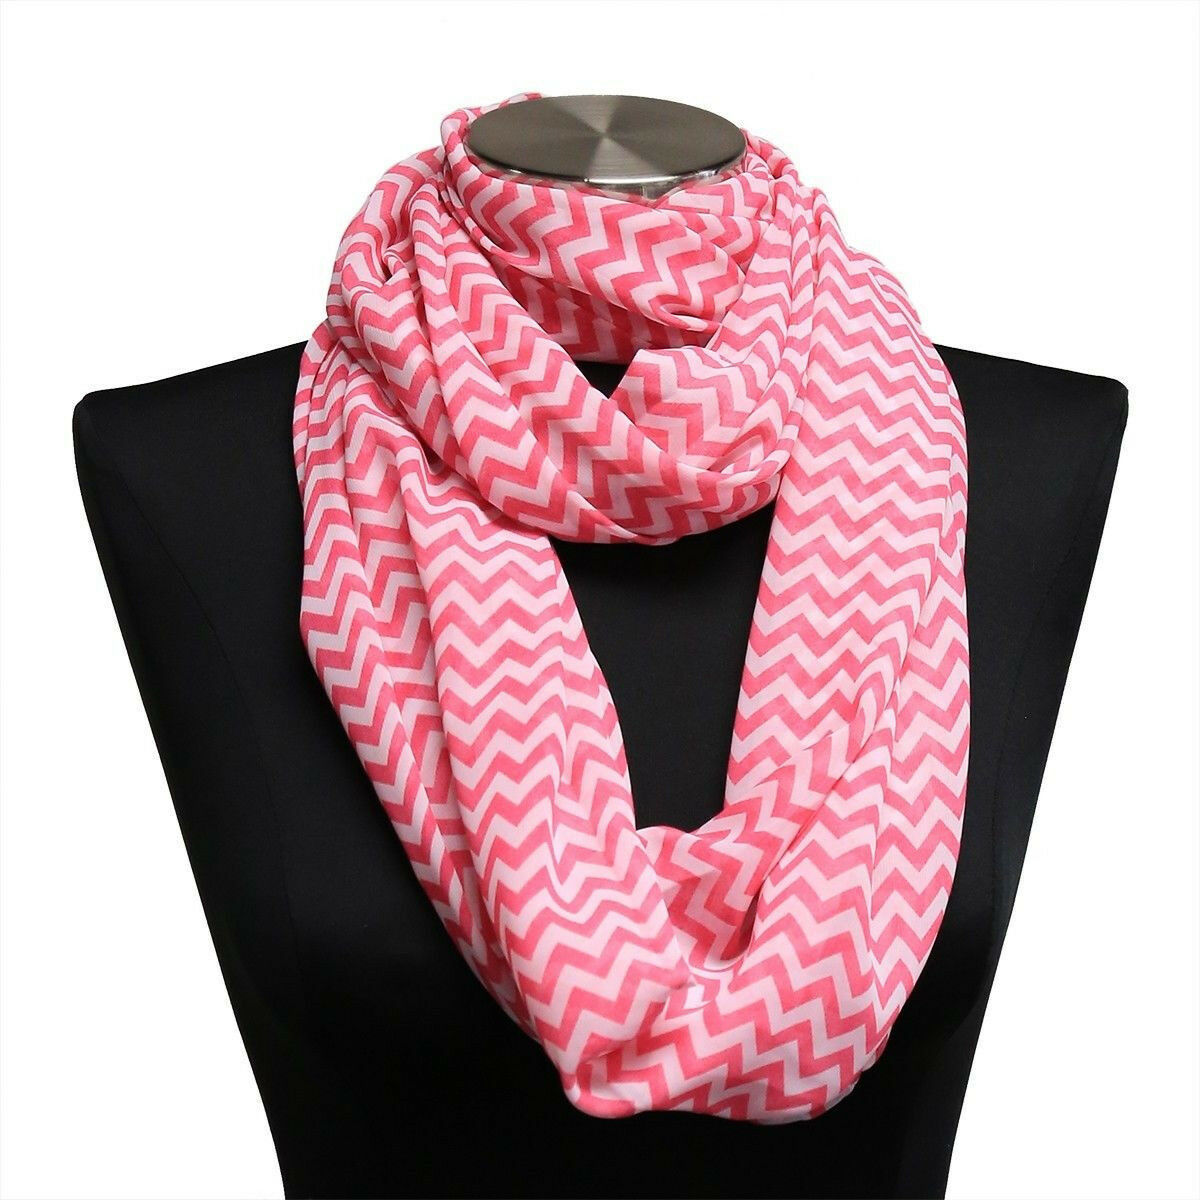 Primary image for 10pc Pink Chevron Sheer Infinity Scarf Wrap WHOLESALE BULK LOT